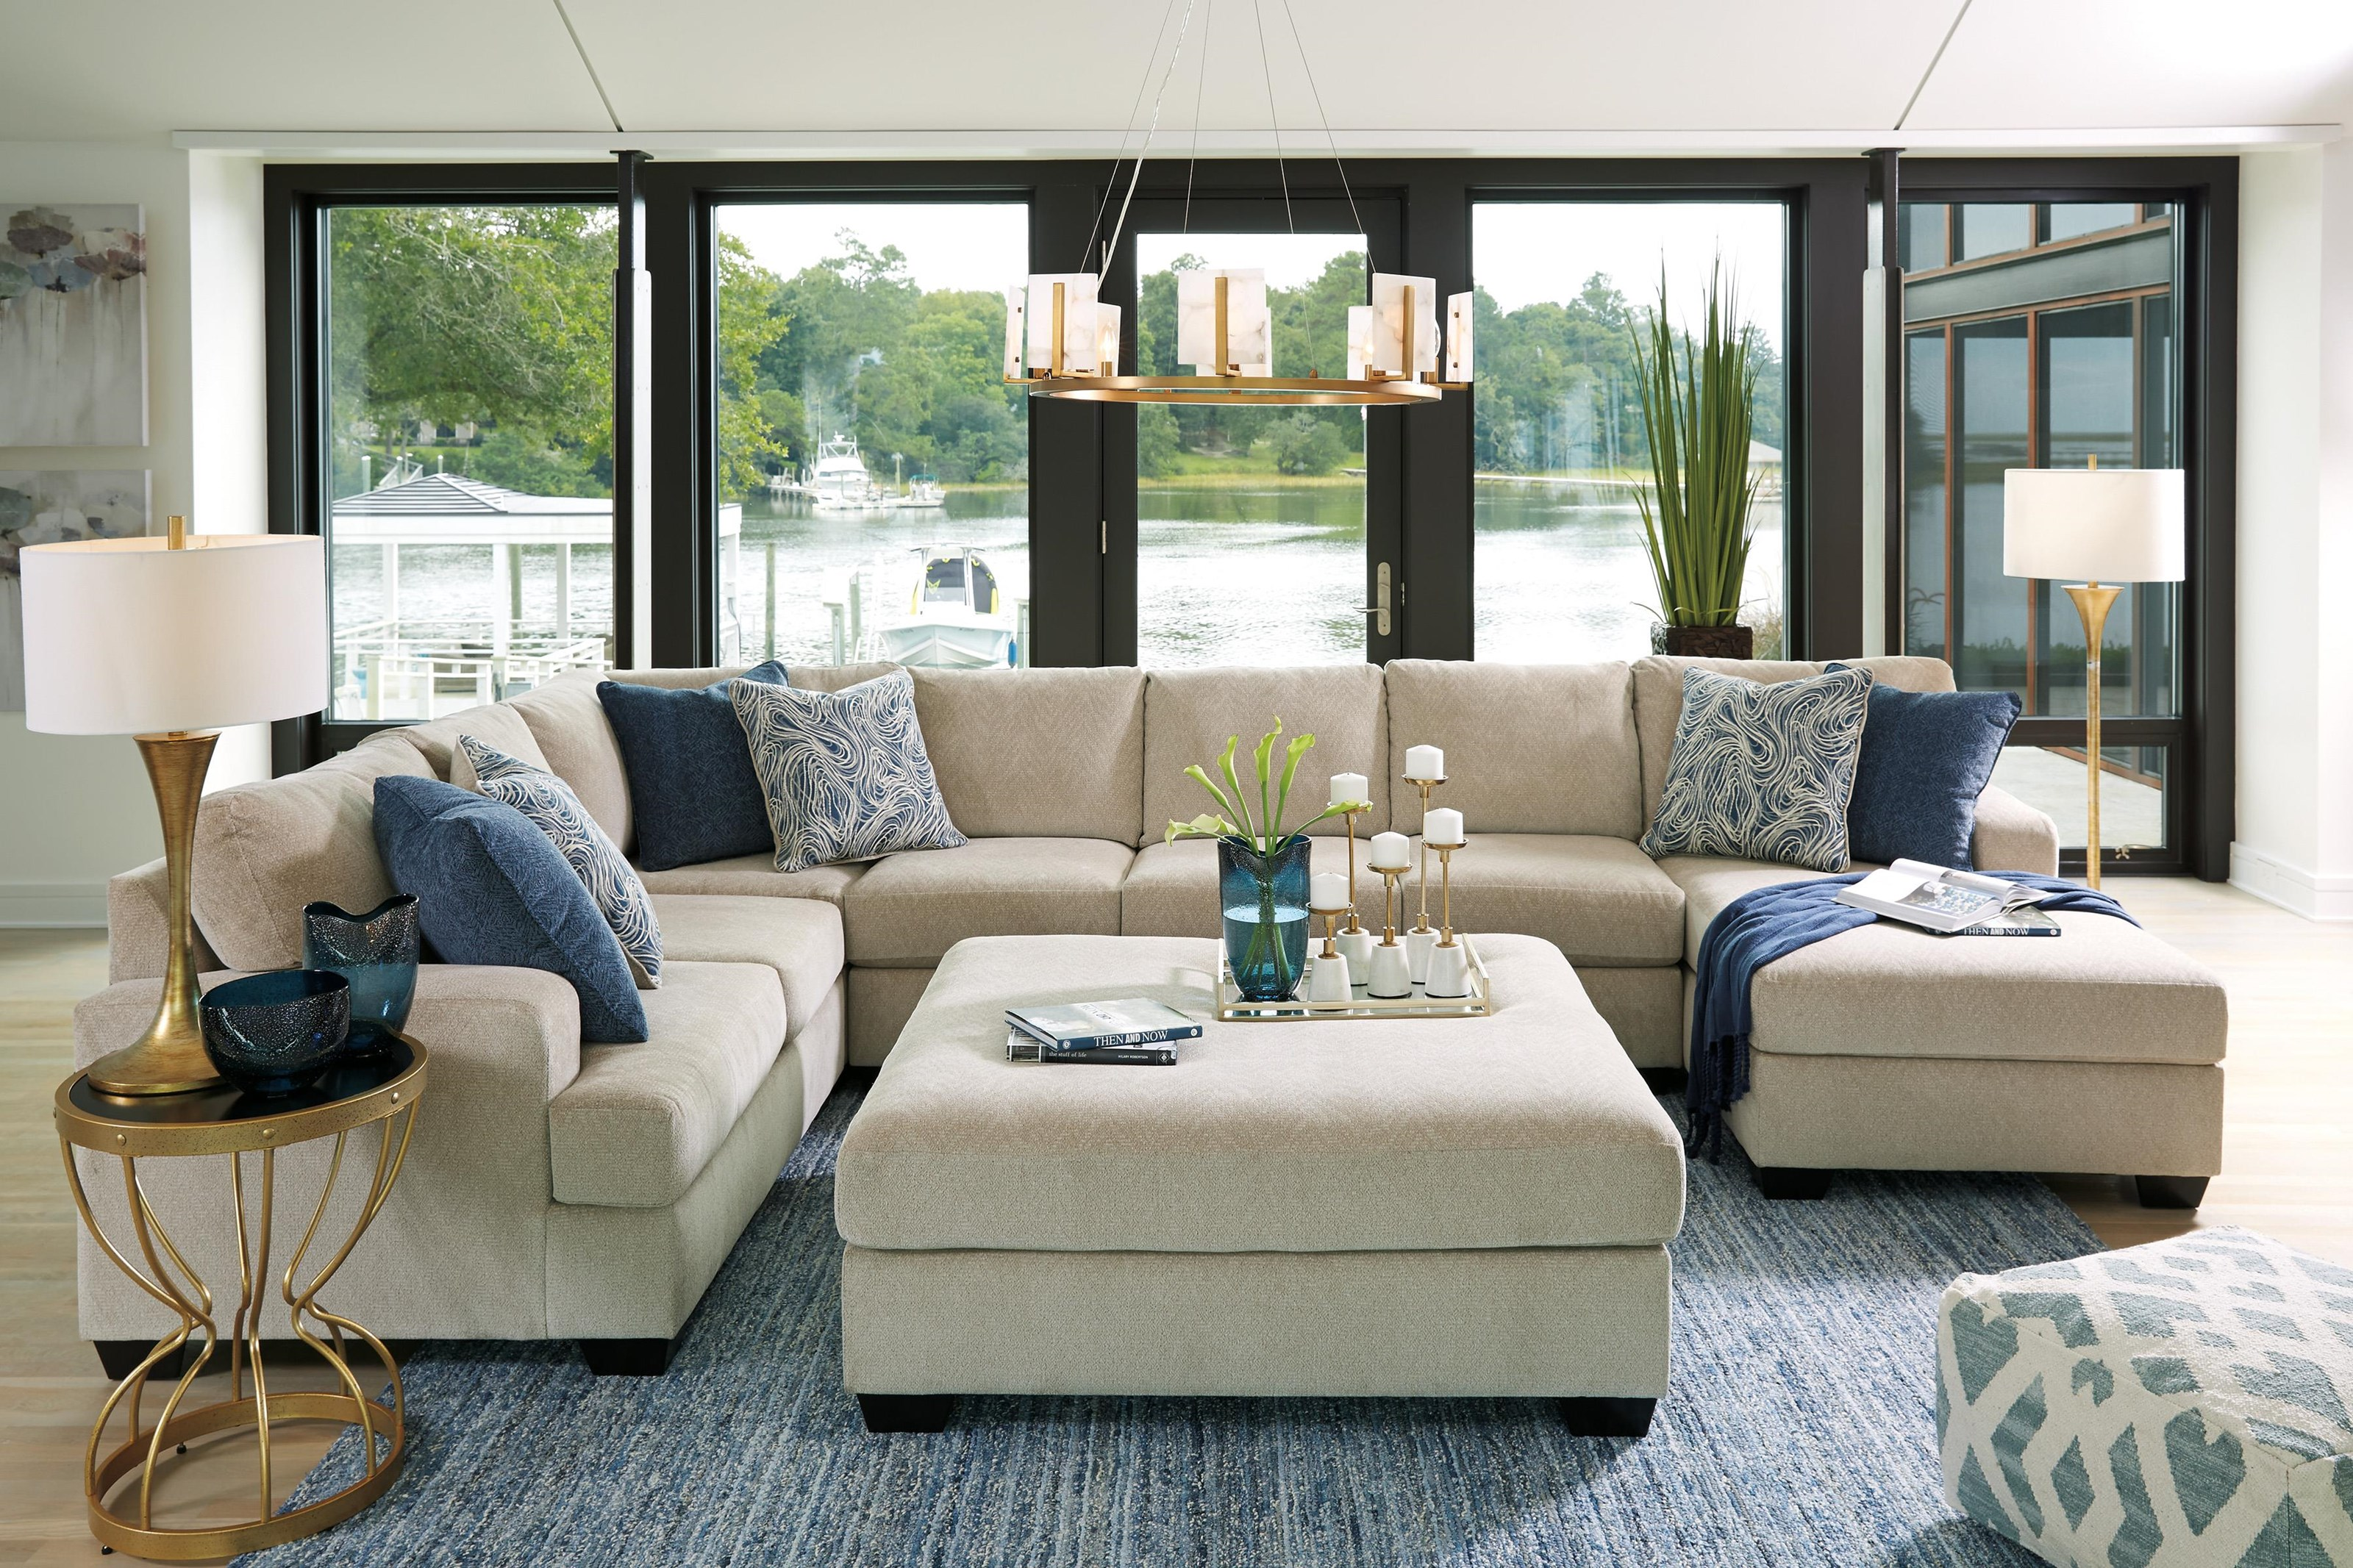 Enola  Enola Sectional Sofa at Morris Home